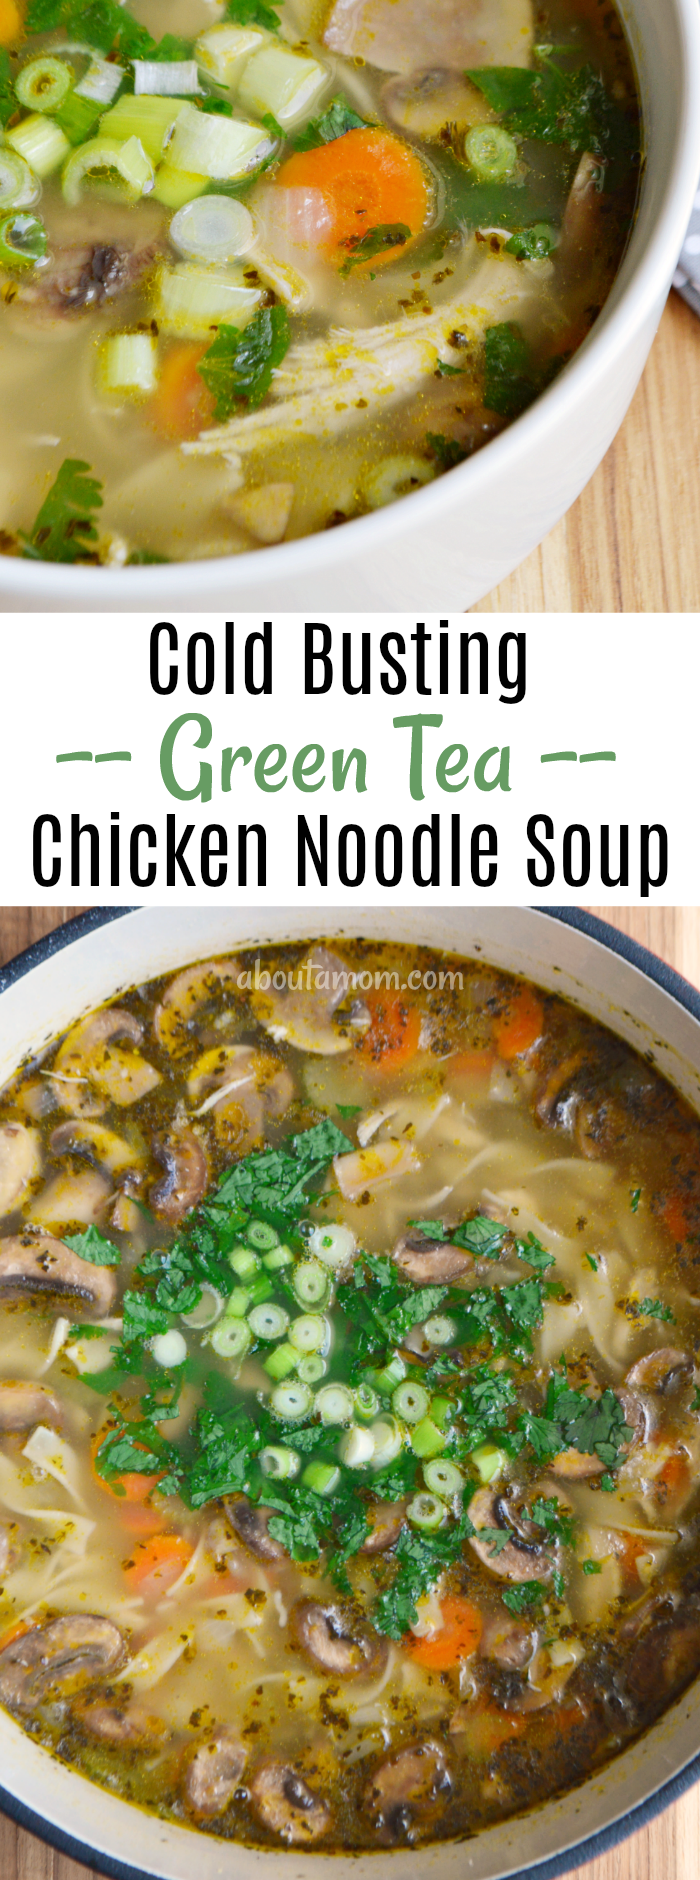 Loaded with antioxidants and nutrients, this cold busting green tea chicken noodle soup with ginger is just what you need if you are feeling under the weather.